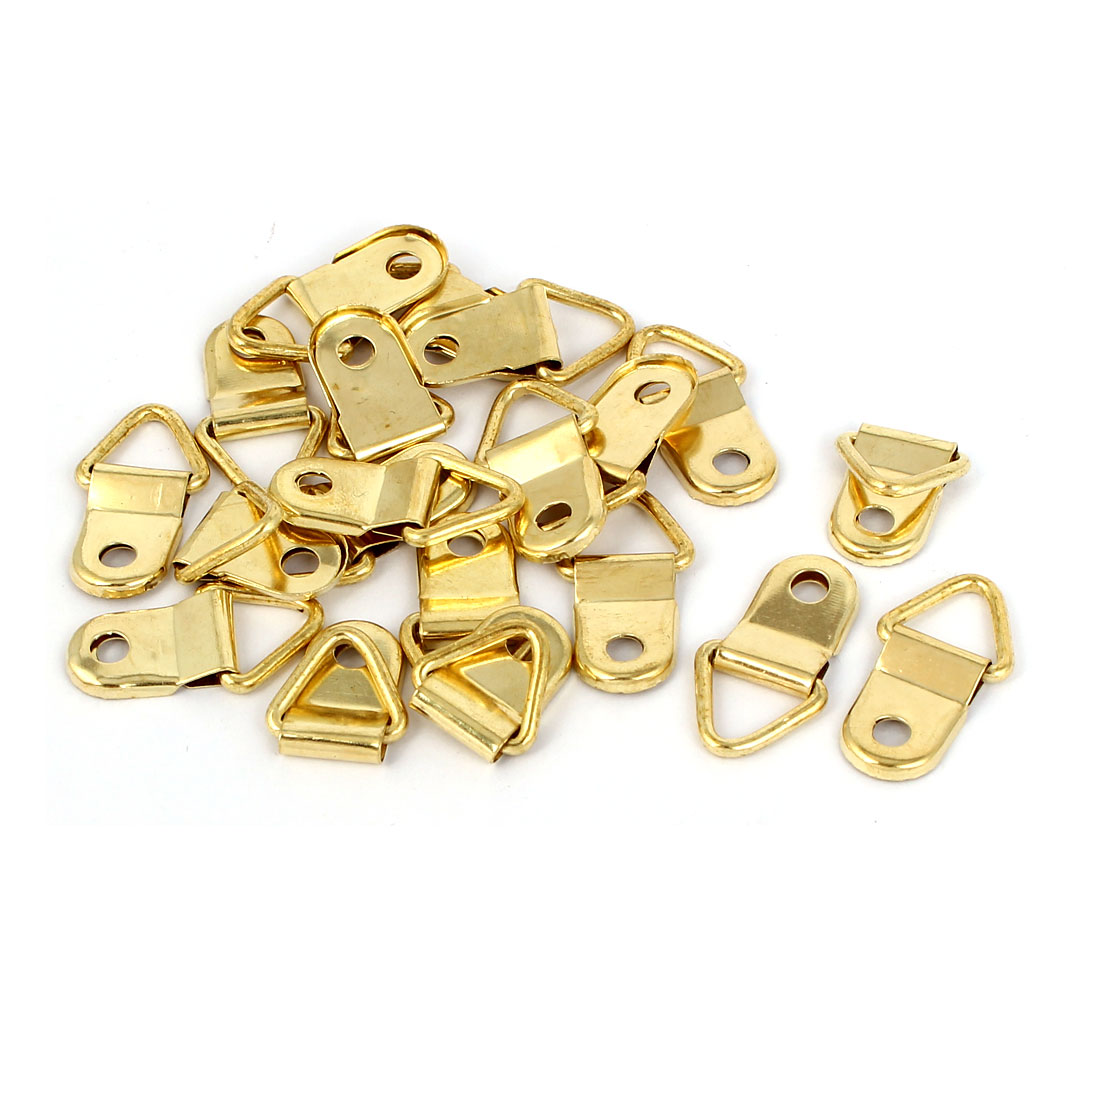 27mm Length Single Hole Triangle D Ring Picture Frame Hangers 20PCS w Screws